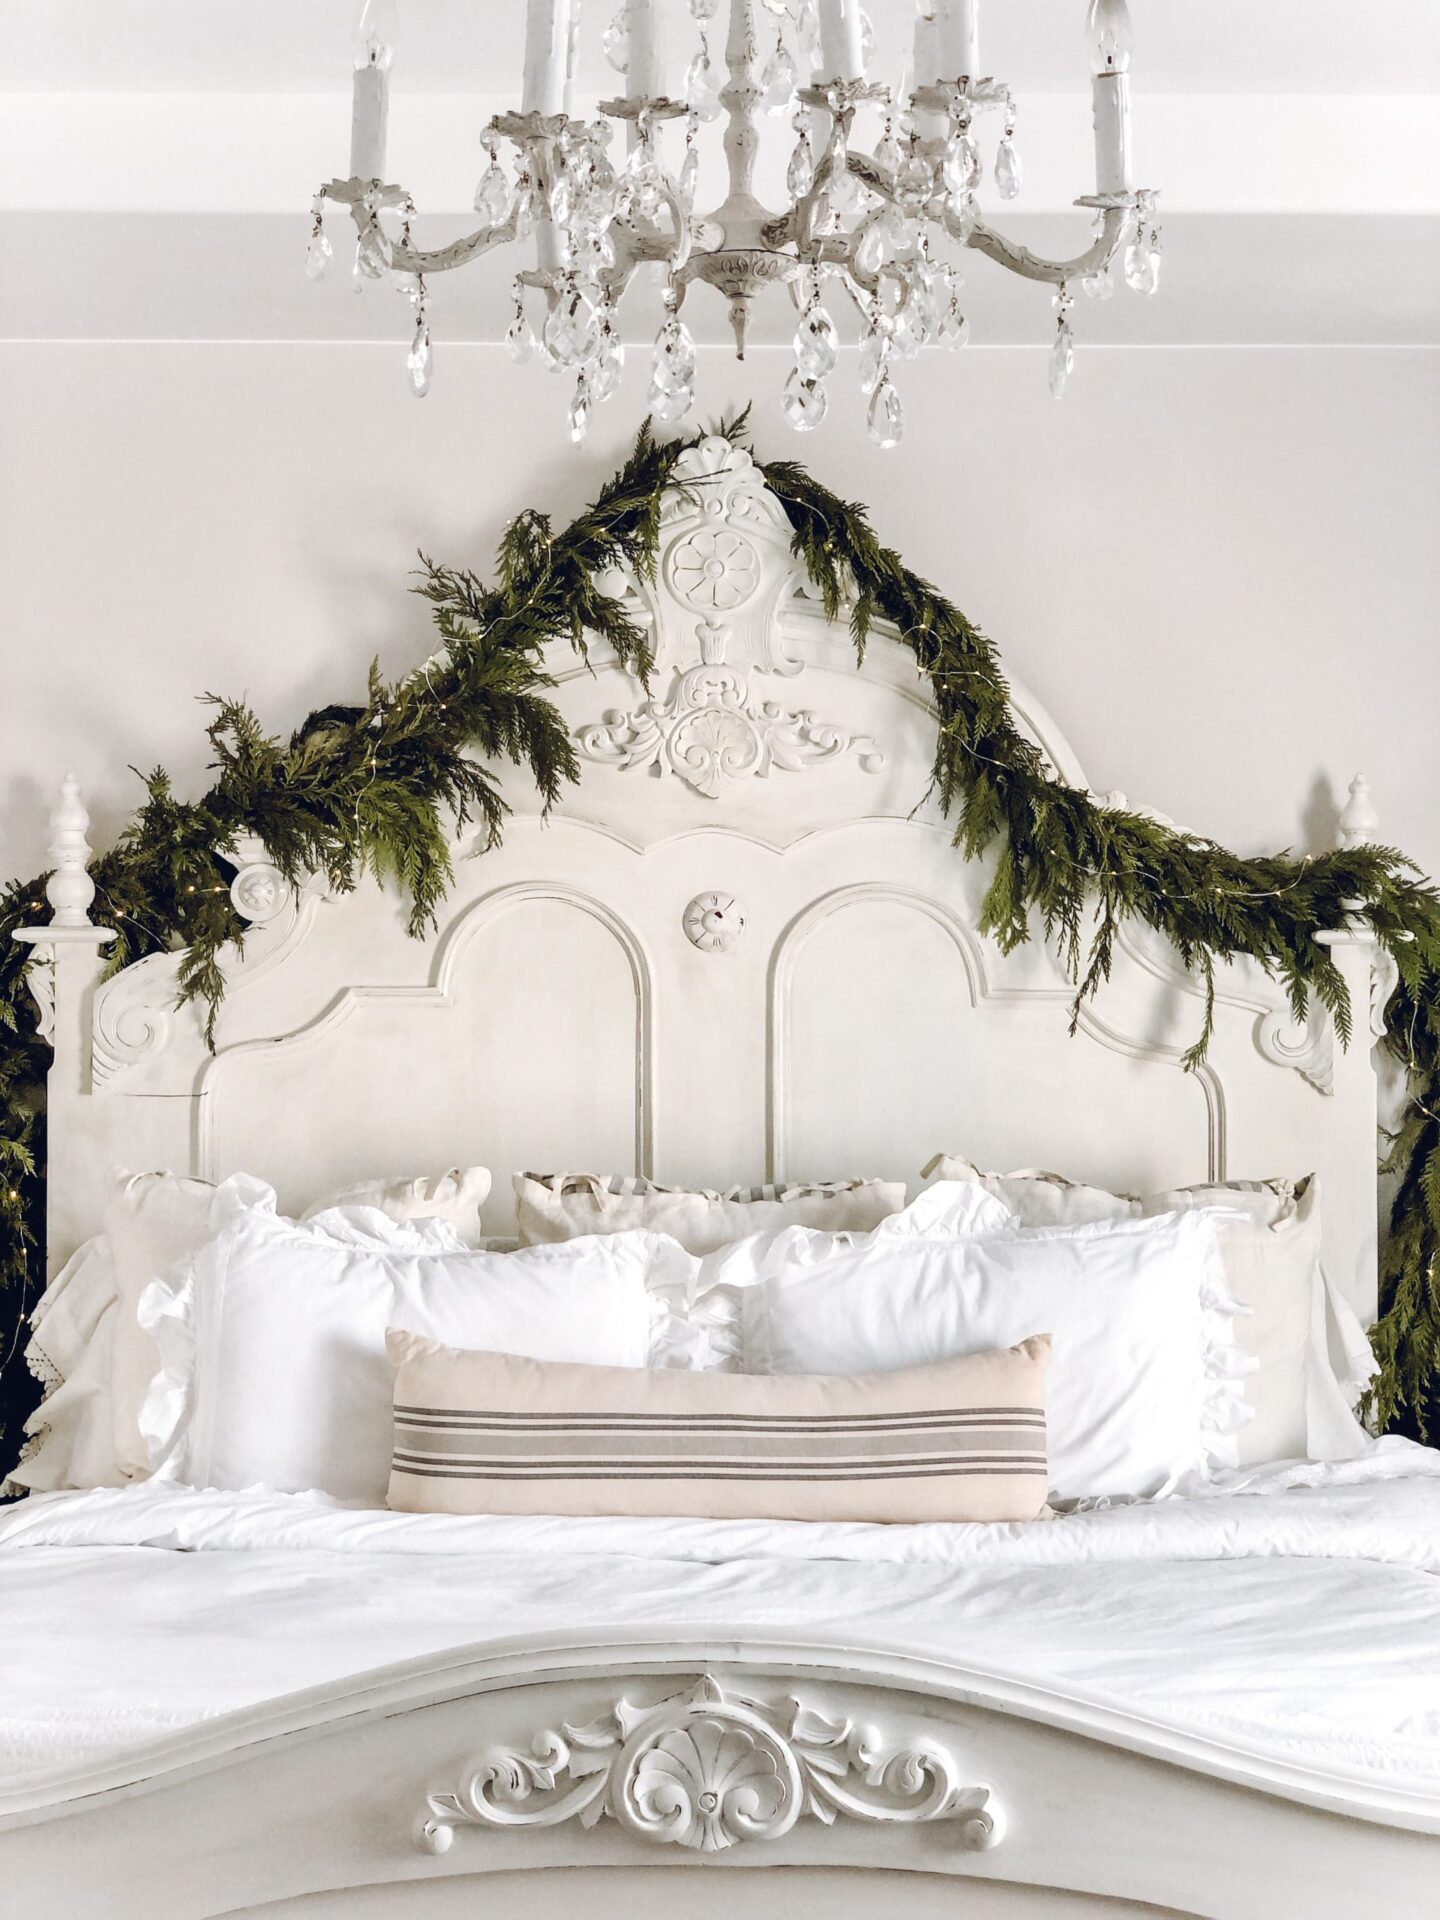 Charming country cottage white bedroom with antique headboard decorated simply with fresh greenery - Le Cultivateur. #holidaydecor #christmasgarland #bedrooms